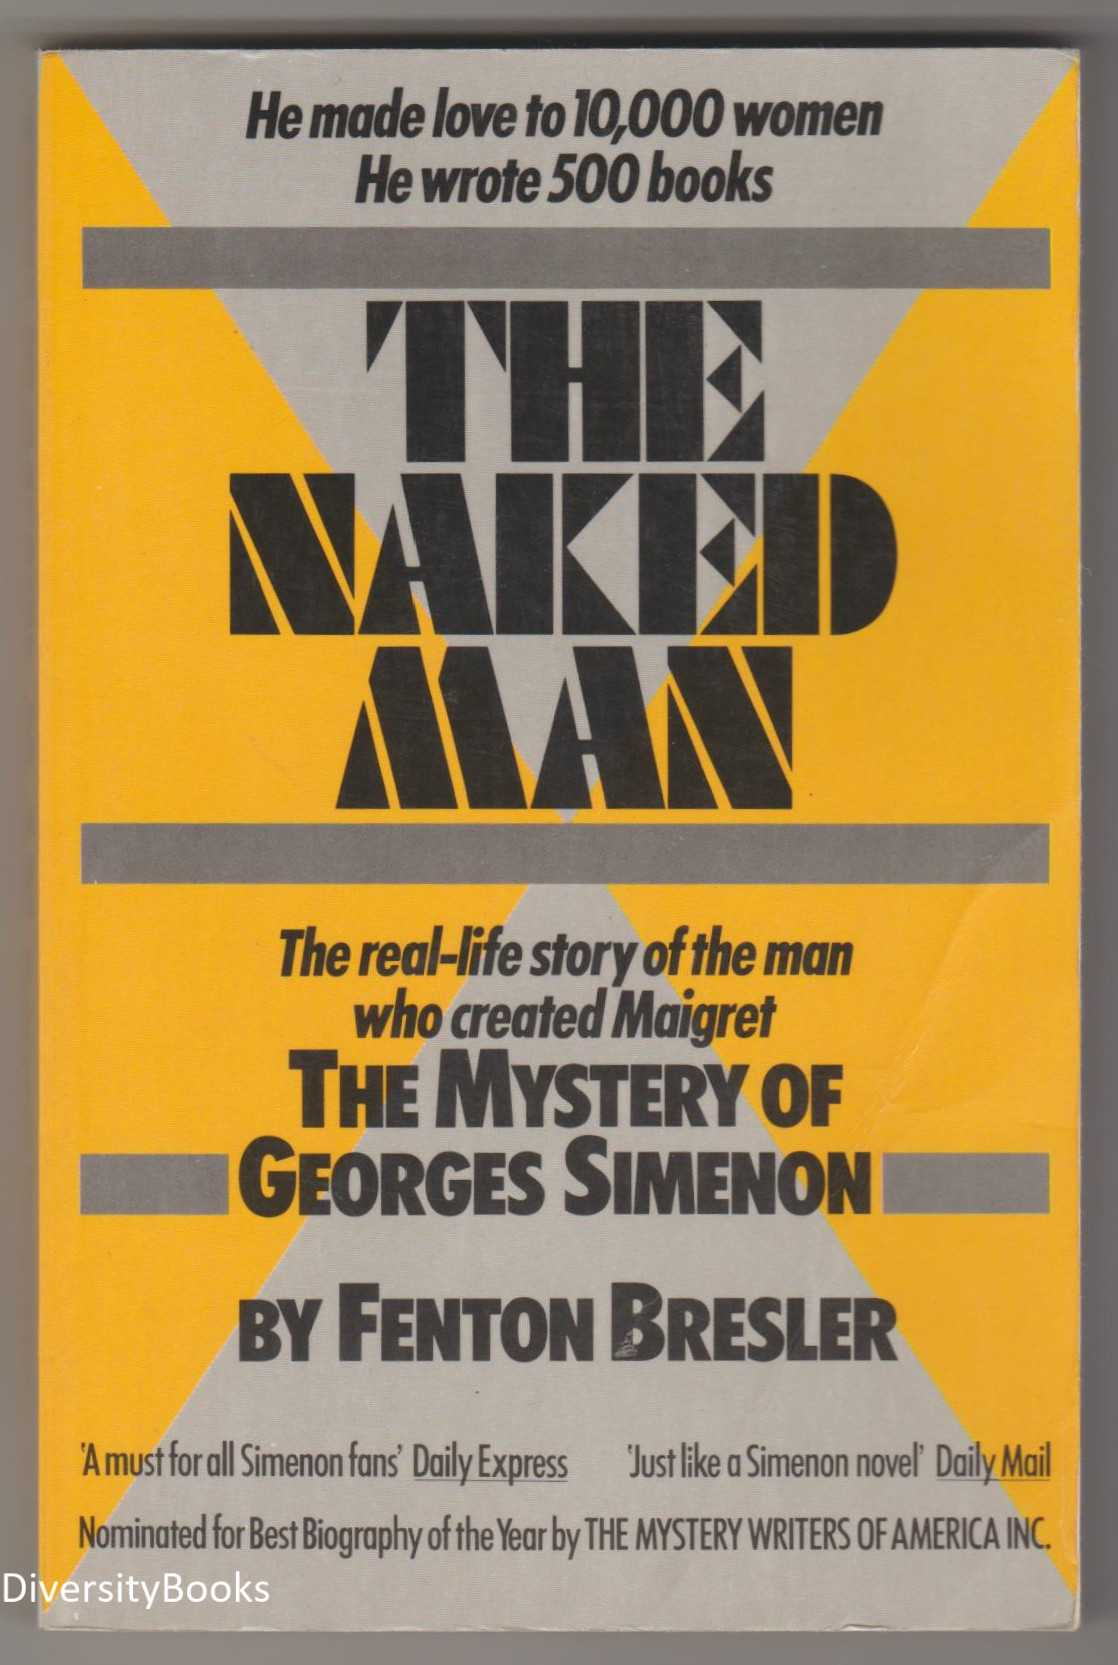 Image for THE NAKED MAN: The Mystery of Georges Simenon